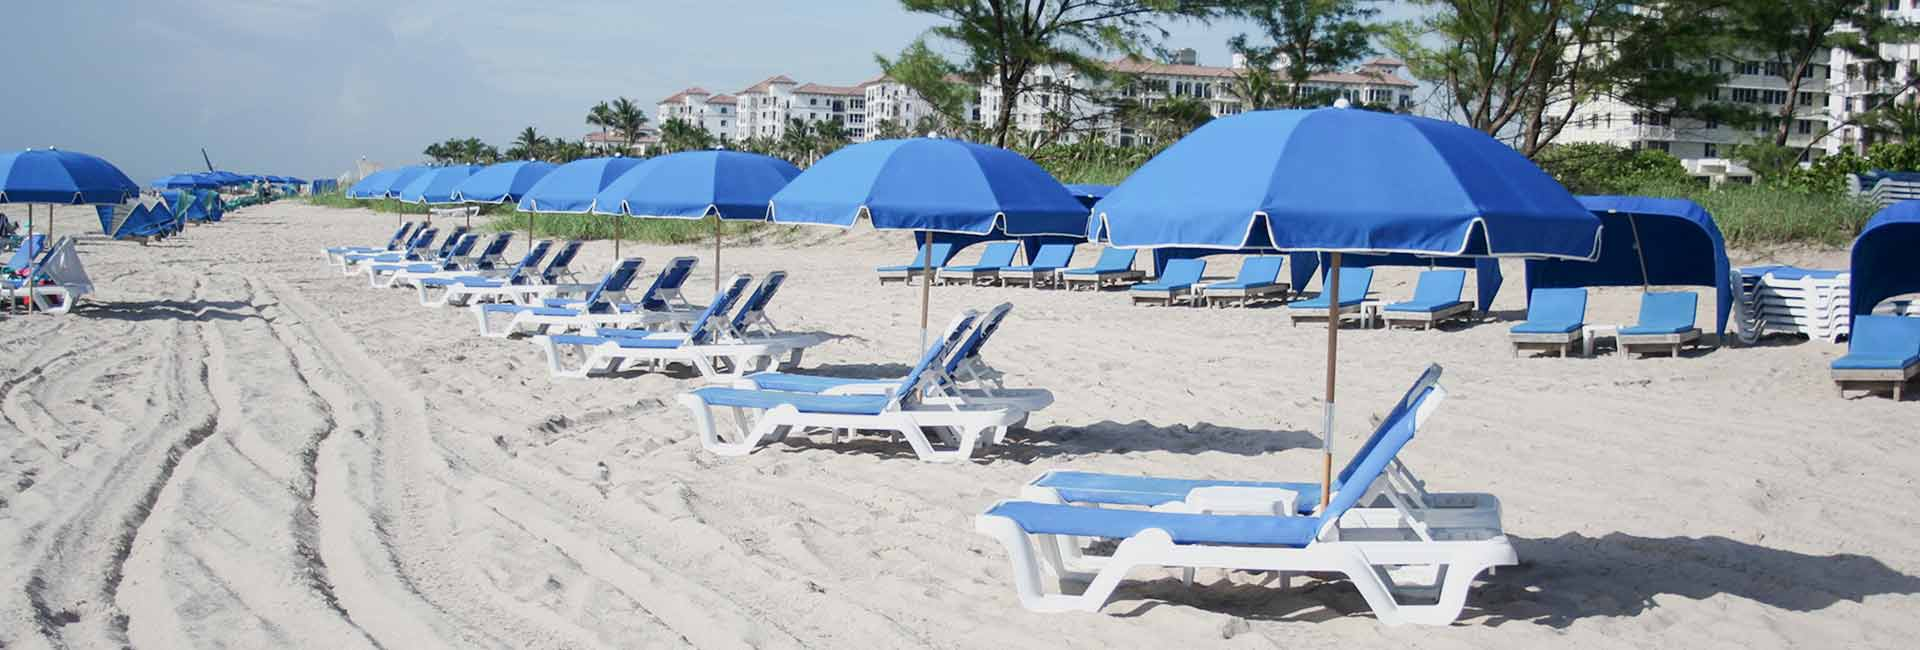 Blue beach chairs on Palm Beach resort